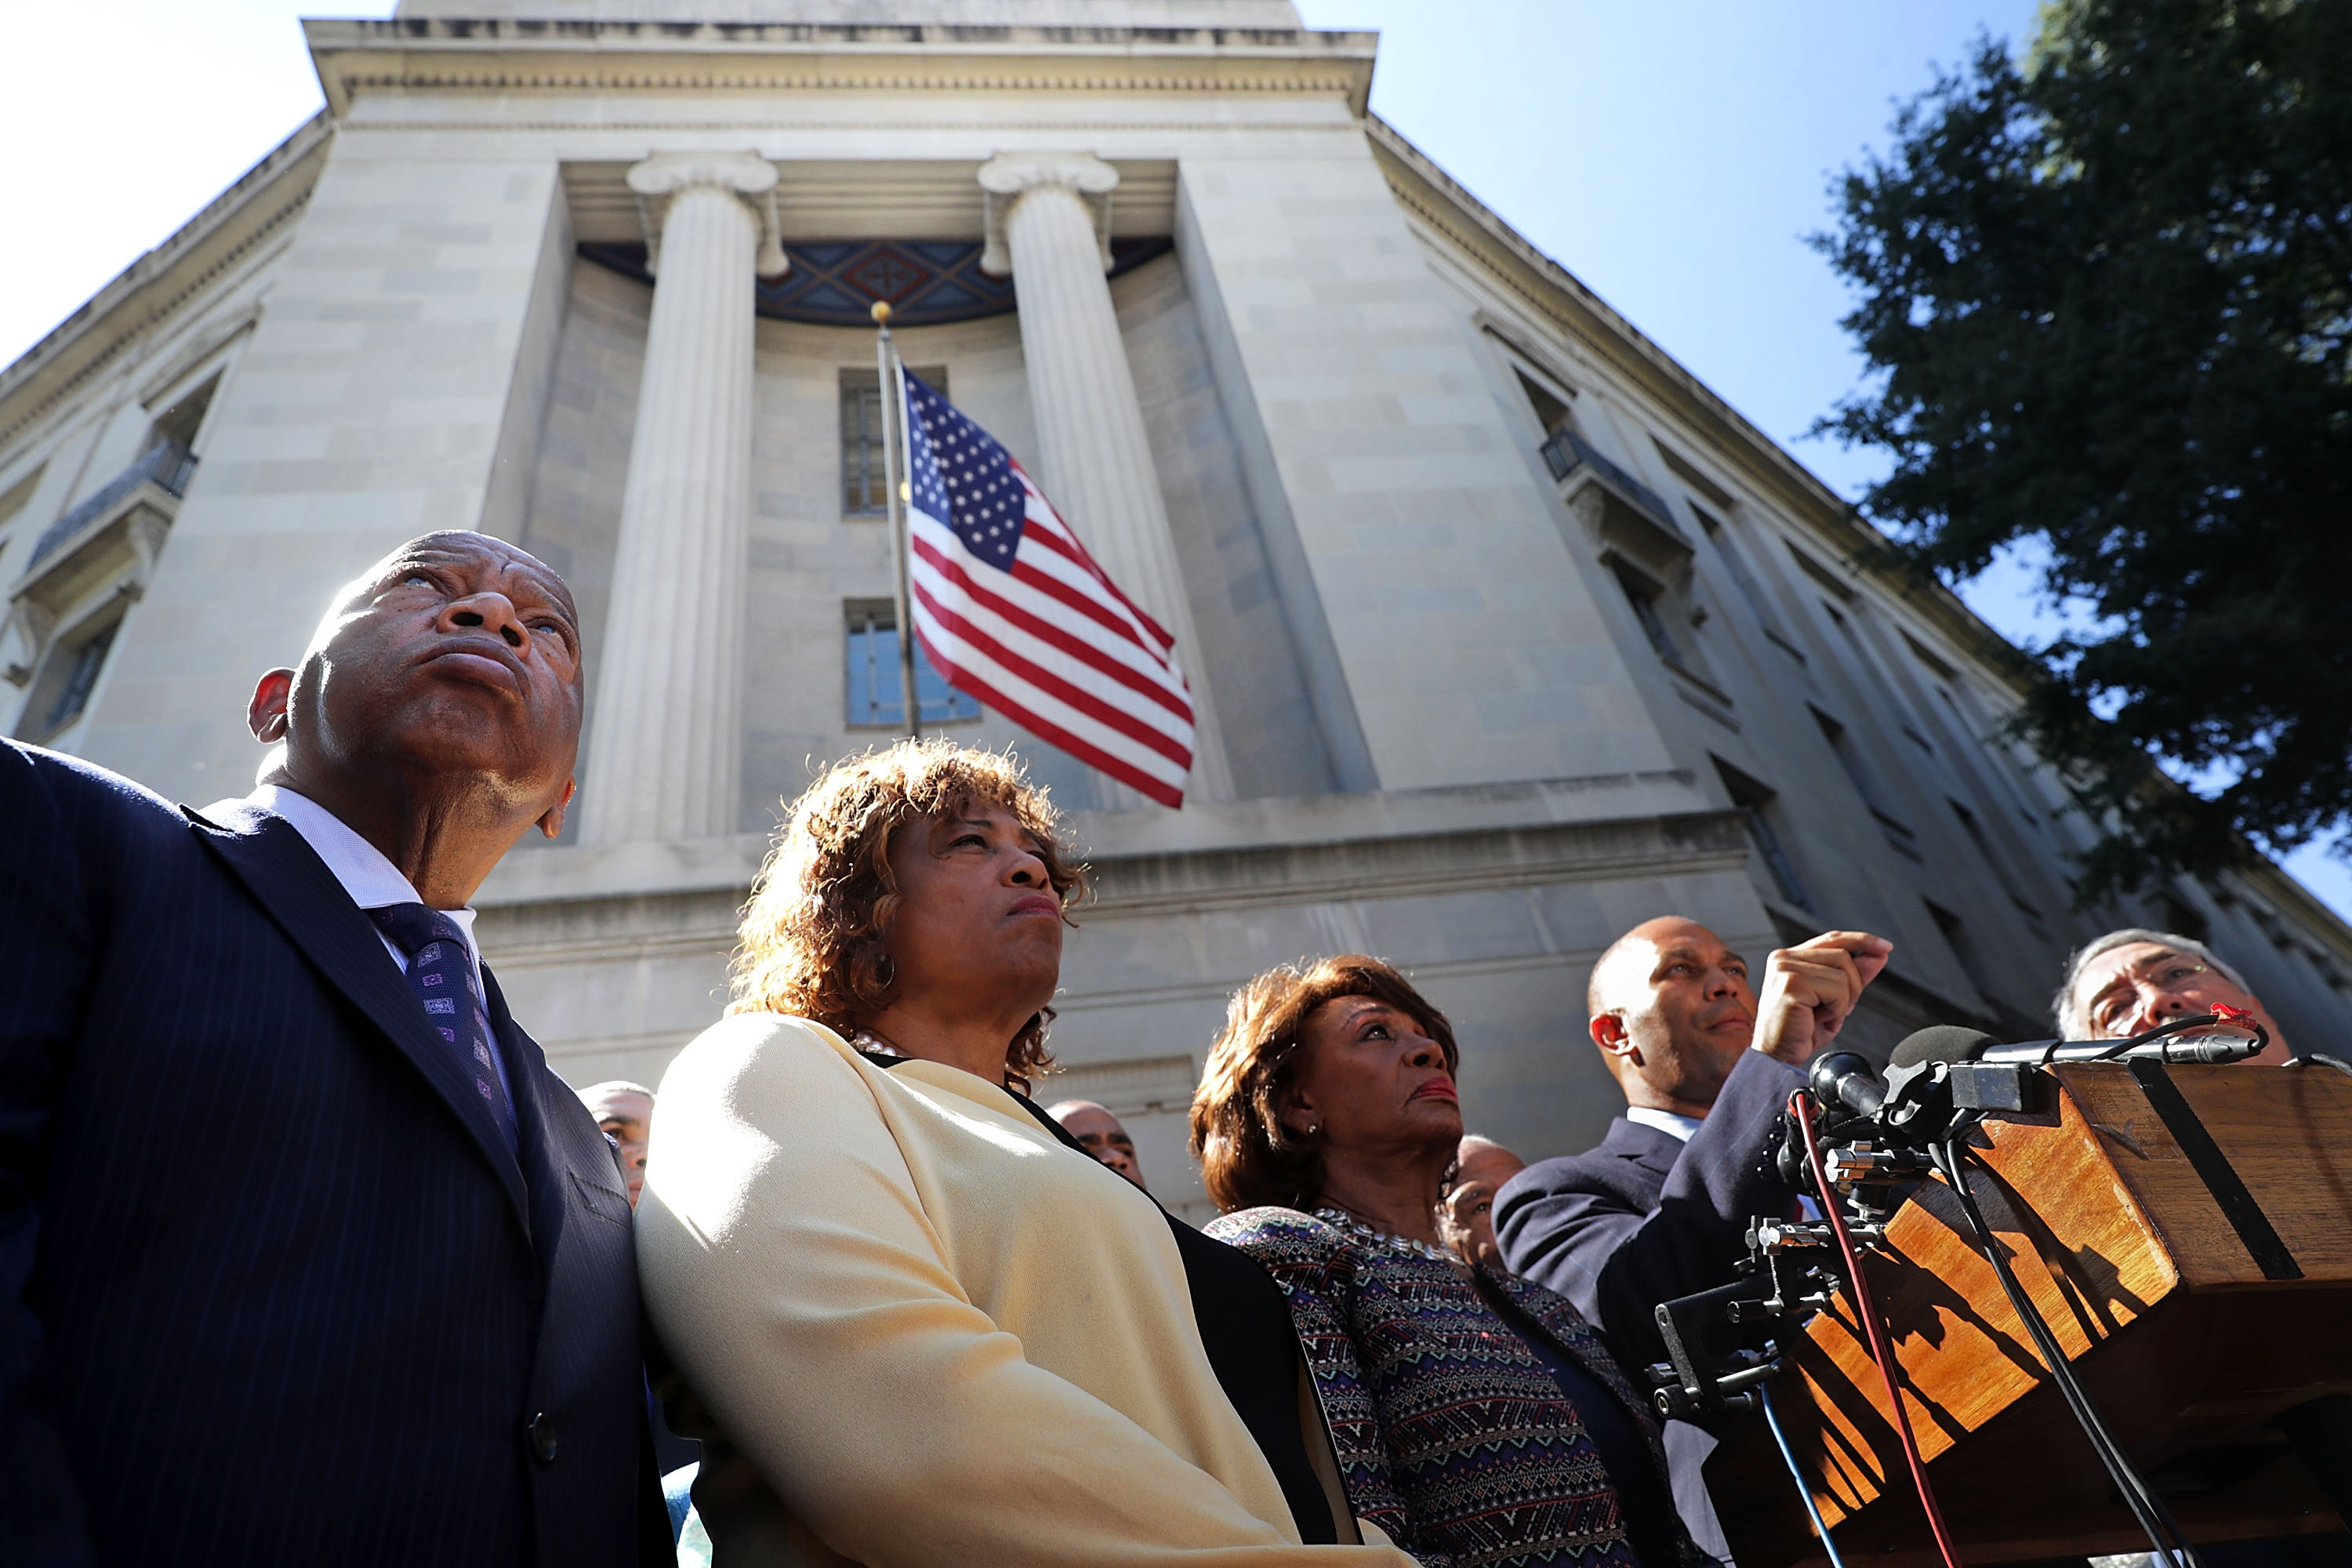 """WASHINGTON, DC - SEPTEMBER 22:  (L-R) Civil rights pioneer Rep. John Lewis (D-GA), Rep. Brenda Lawrence (D-MI), Rep. Maxine Waters (D-CA) and other members of the Congressional Black Caucus hold a news conference after marching to the Department of Justice from the U.S. Capitol September 22, 2016 in Washington, DC. The caucus members marched to the Department of Justice to deliver a letter to Attorney General Loretta Lynch """"urging her to use the power of her office to bring about prosecutions for the targeting and profiling of black men, women and children"""" by law enforcement.  (Photo by Chip Somodevilla/Getty Images)"""